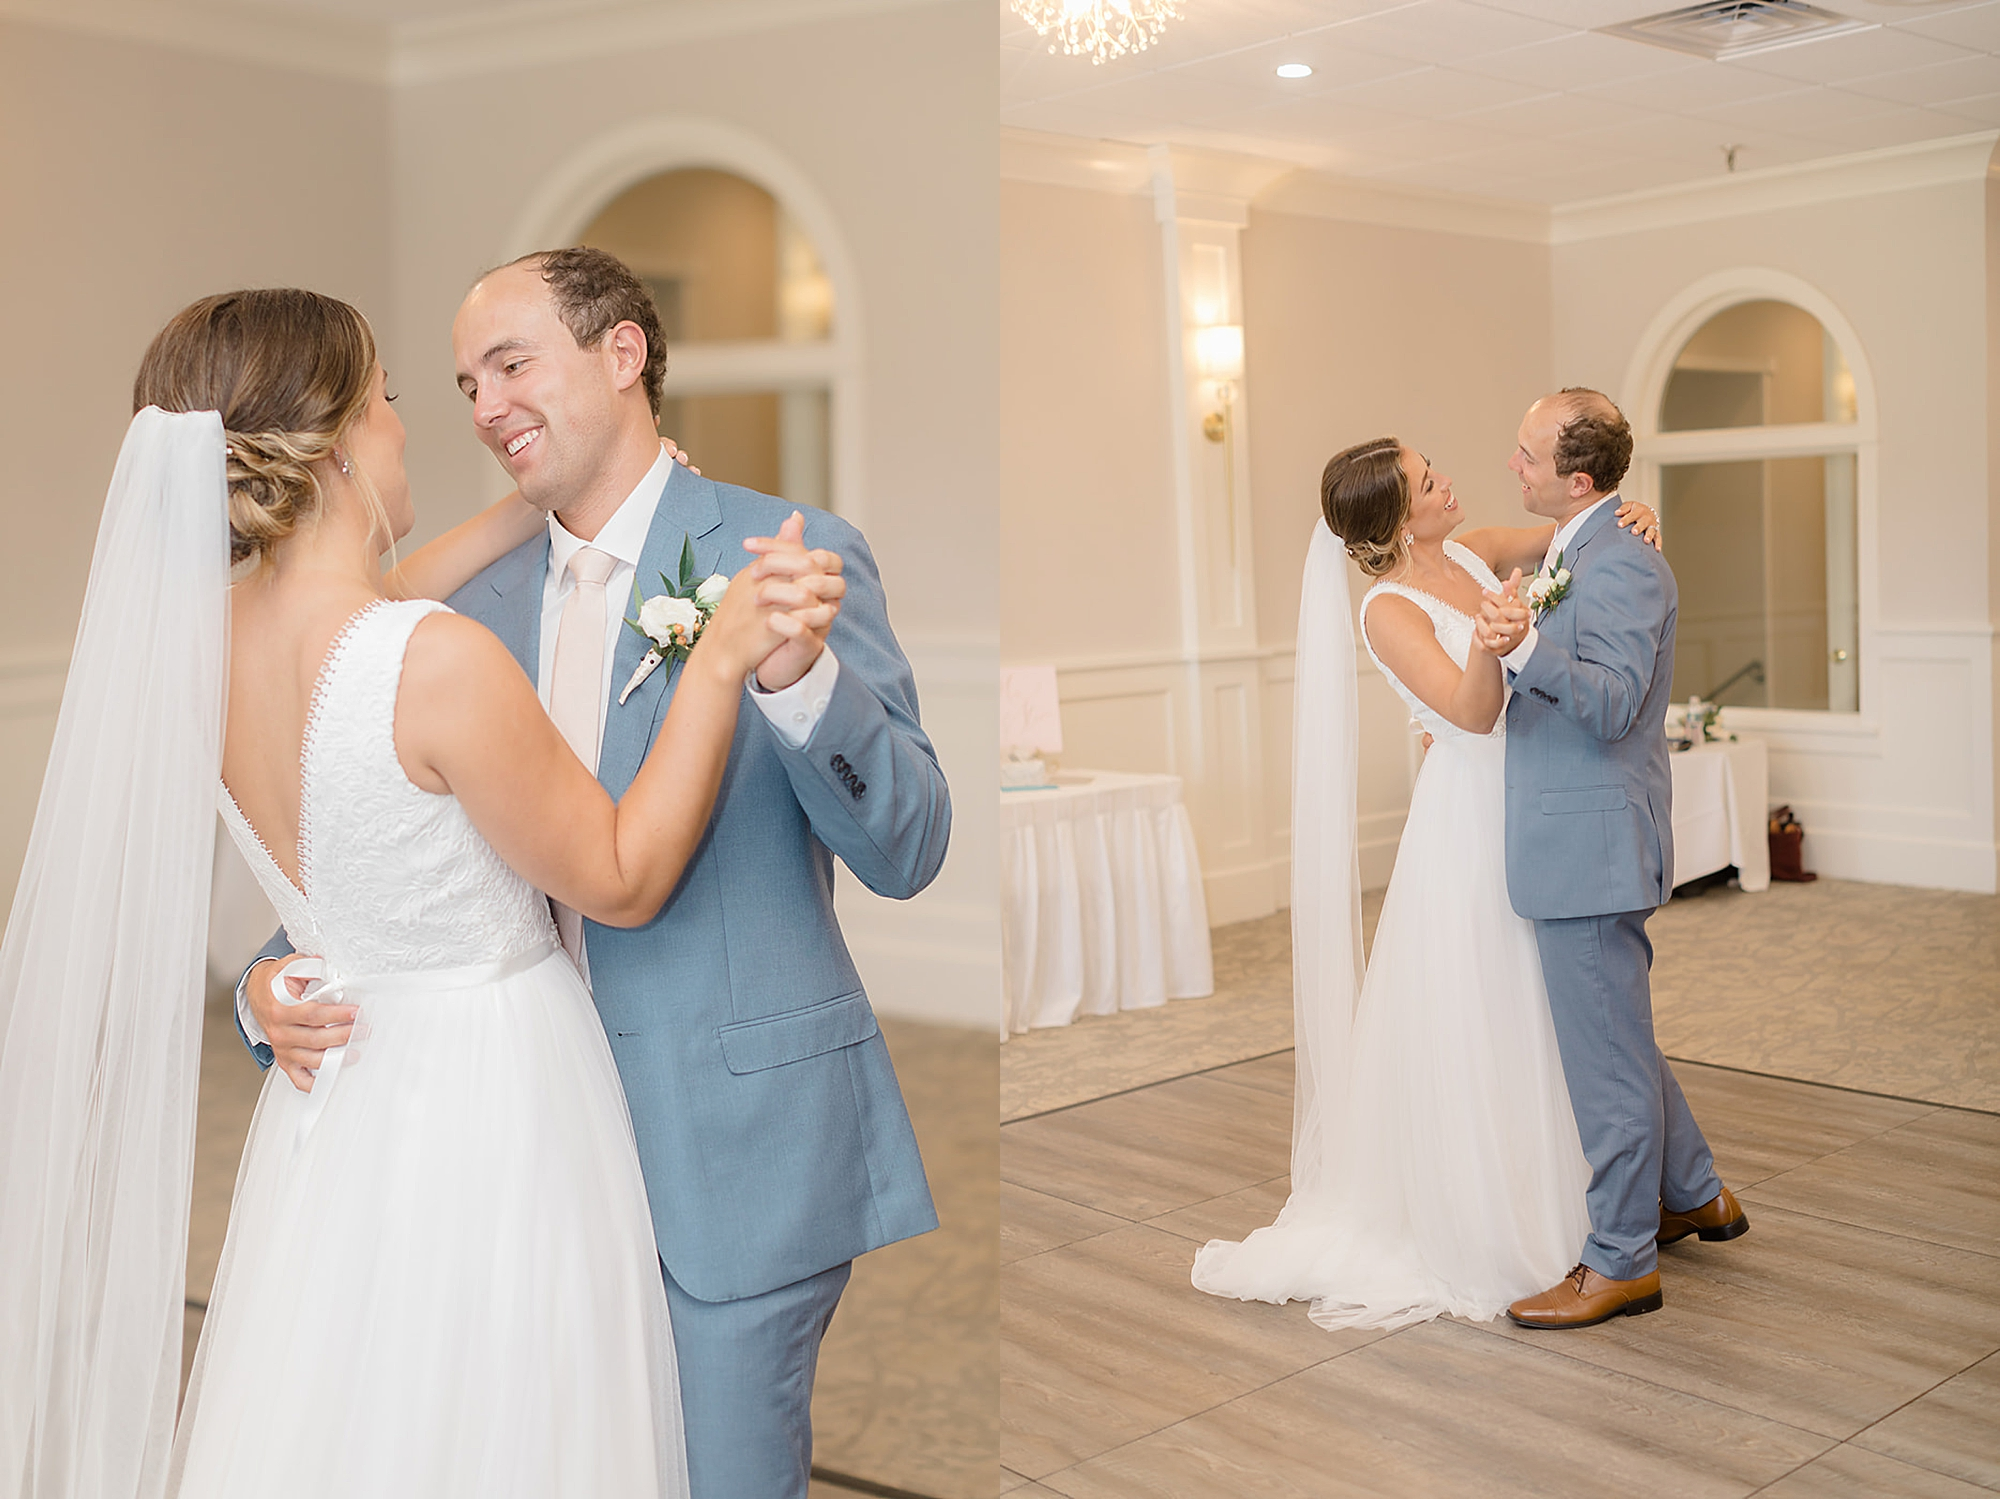 Ocean City New Jersey Wedding Photography by Magdalena Studios 0031